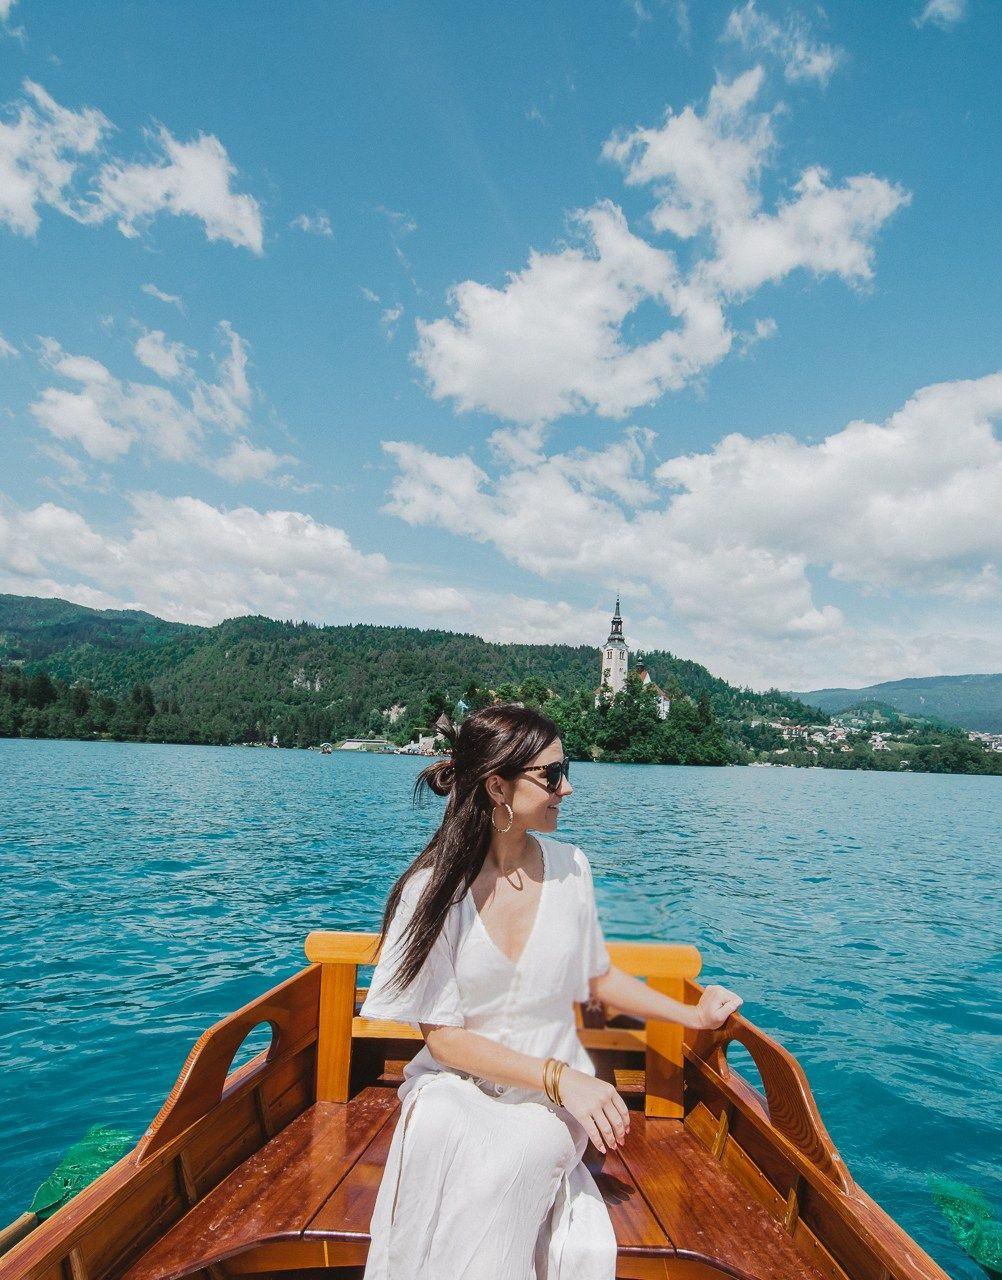 Travel guide to lake bled, slovenia: where to eat, stay and play.